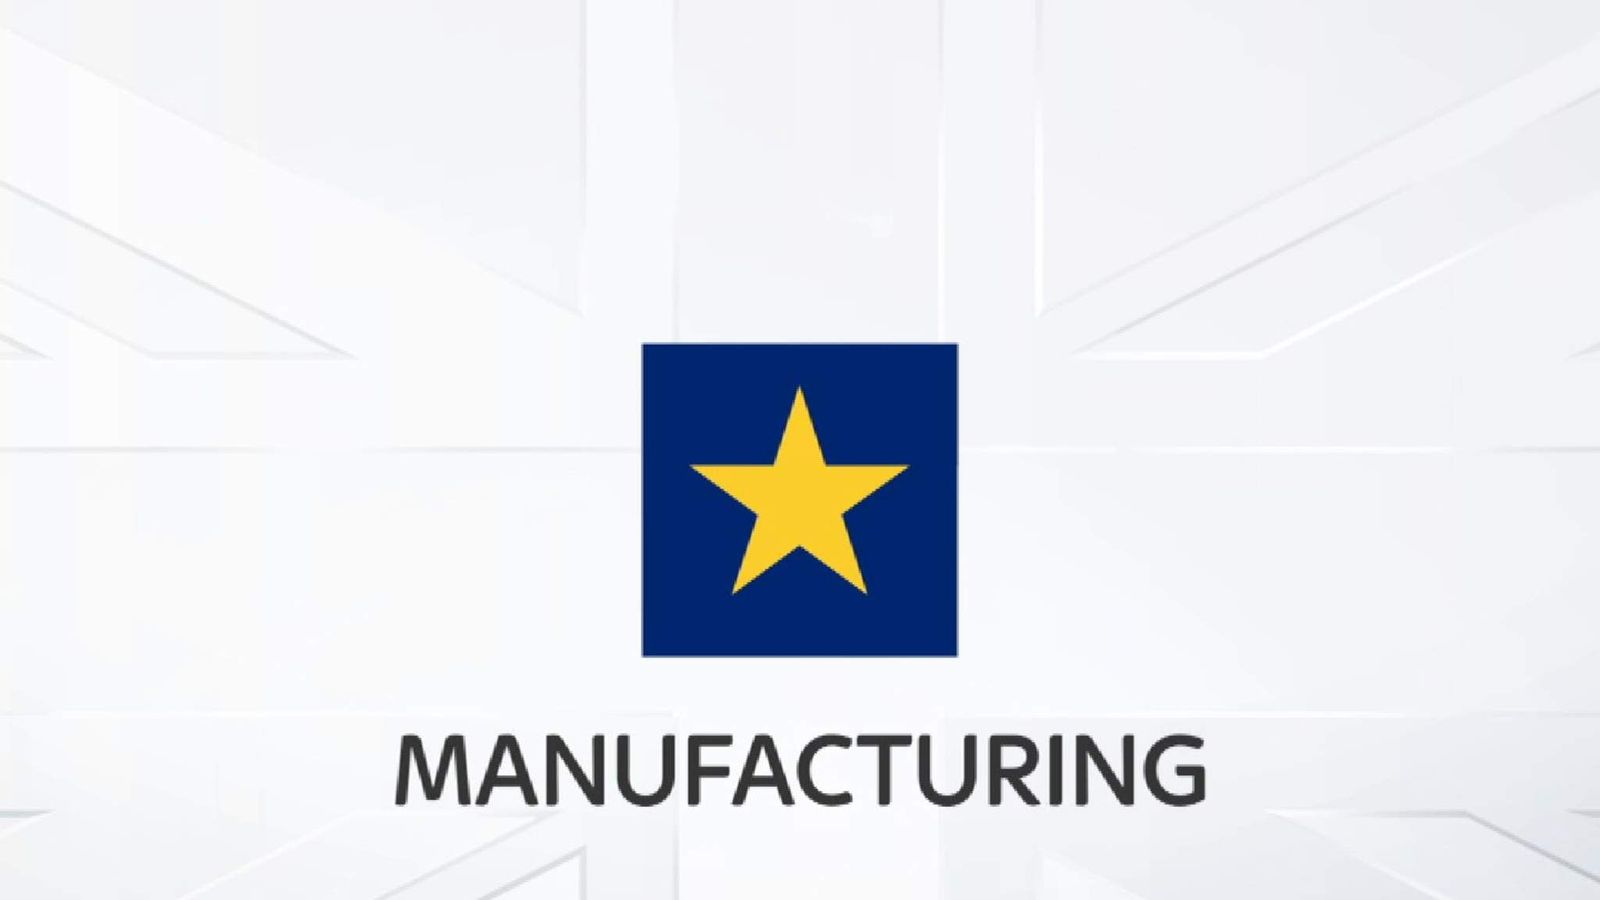 The UK's manufacturing industry